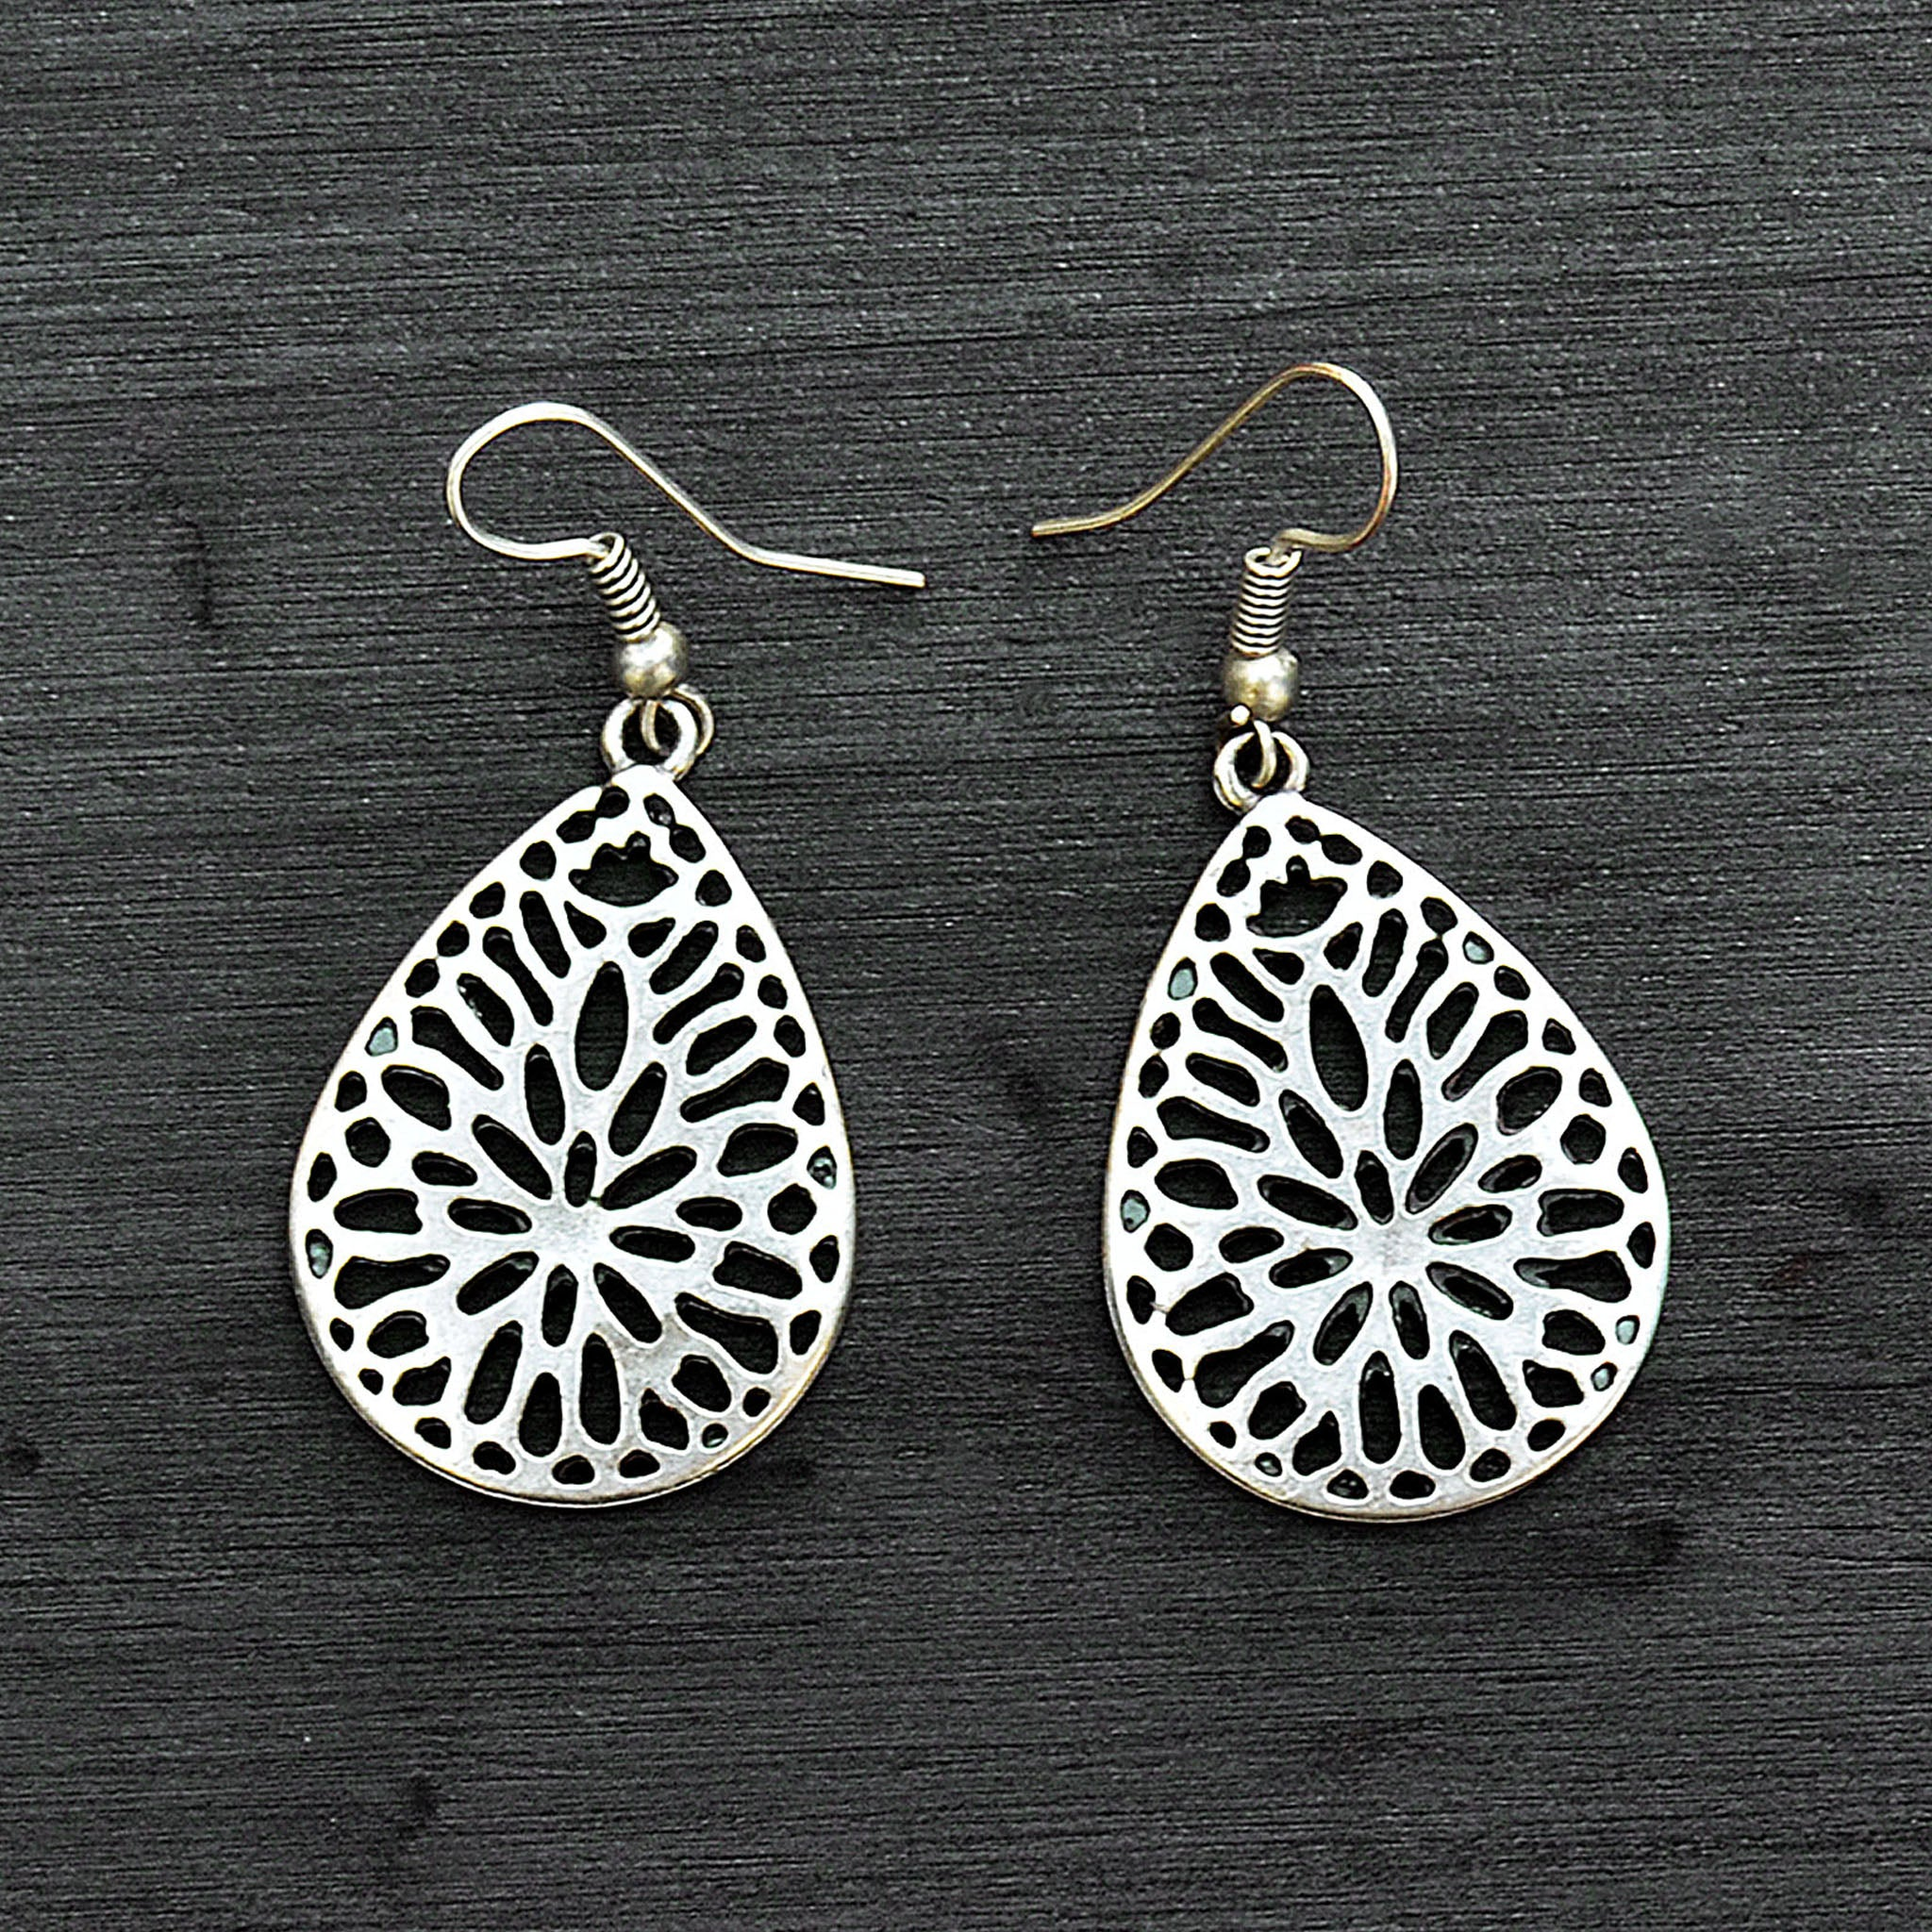 Turkmen drop earrings